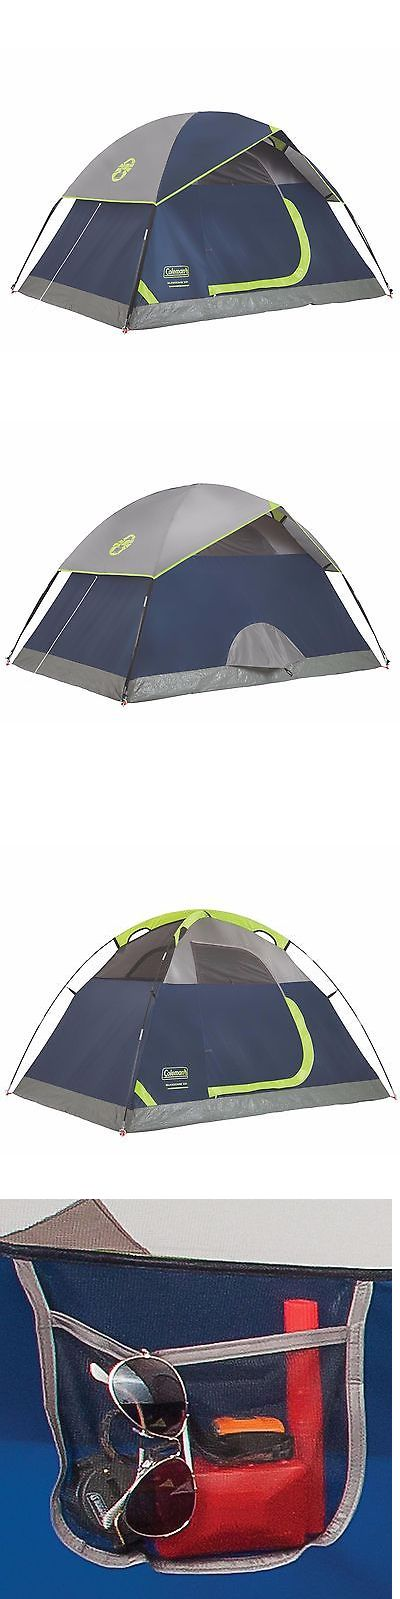 Tents 179010 Coleman Sundome 2 Person Outdoor Hiking C&ing Tent W/ Rainfly Awning |  sc 1 st  Pinterest & Tents 179010: Coleman Sundome 2 Person Outdoor Hiking Camping Tent ...